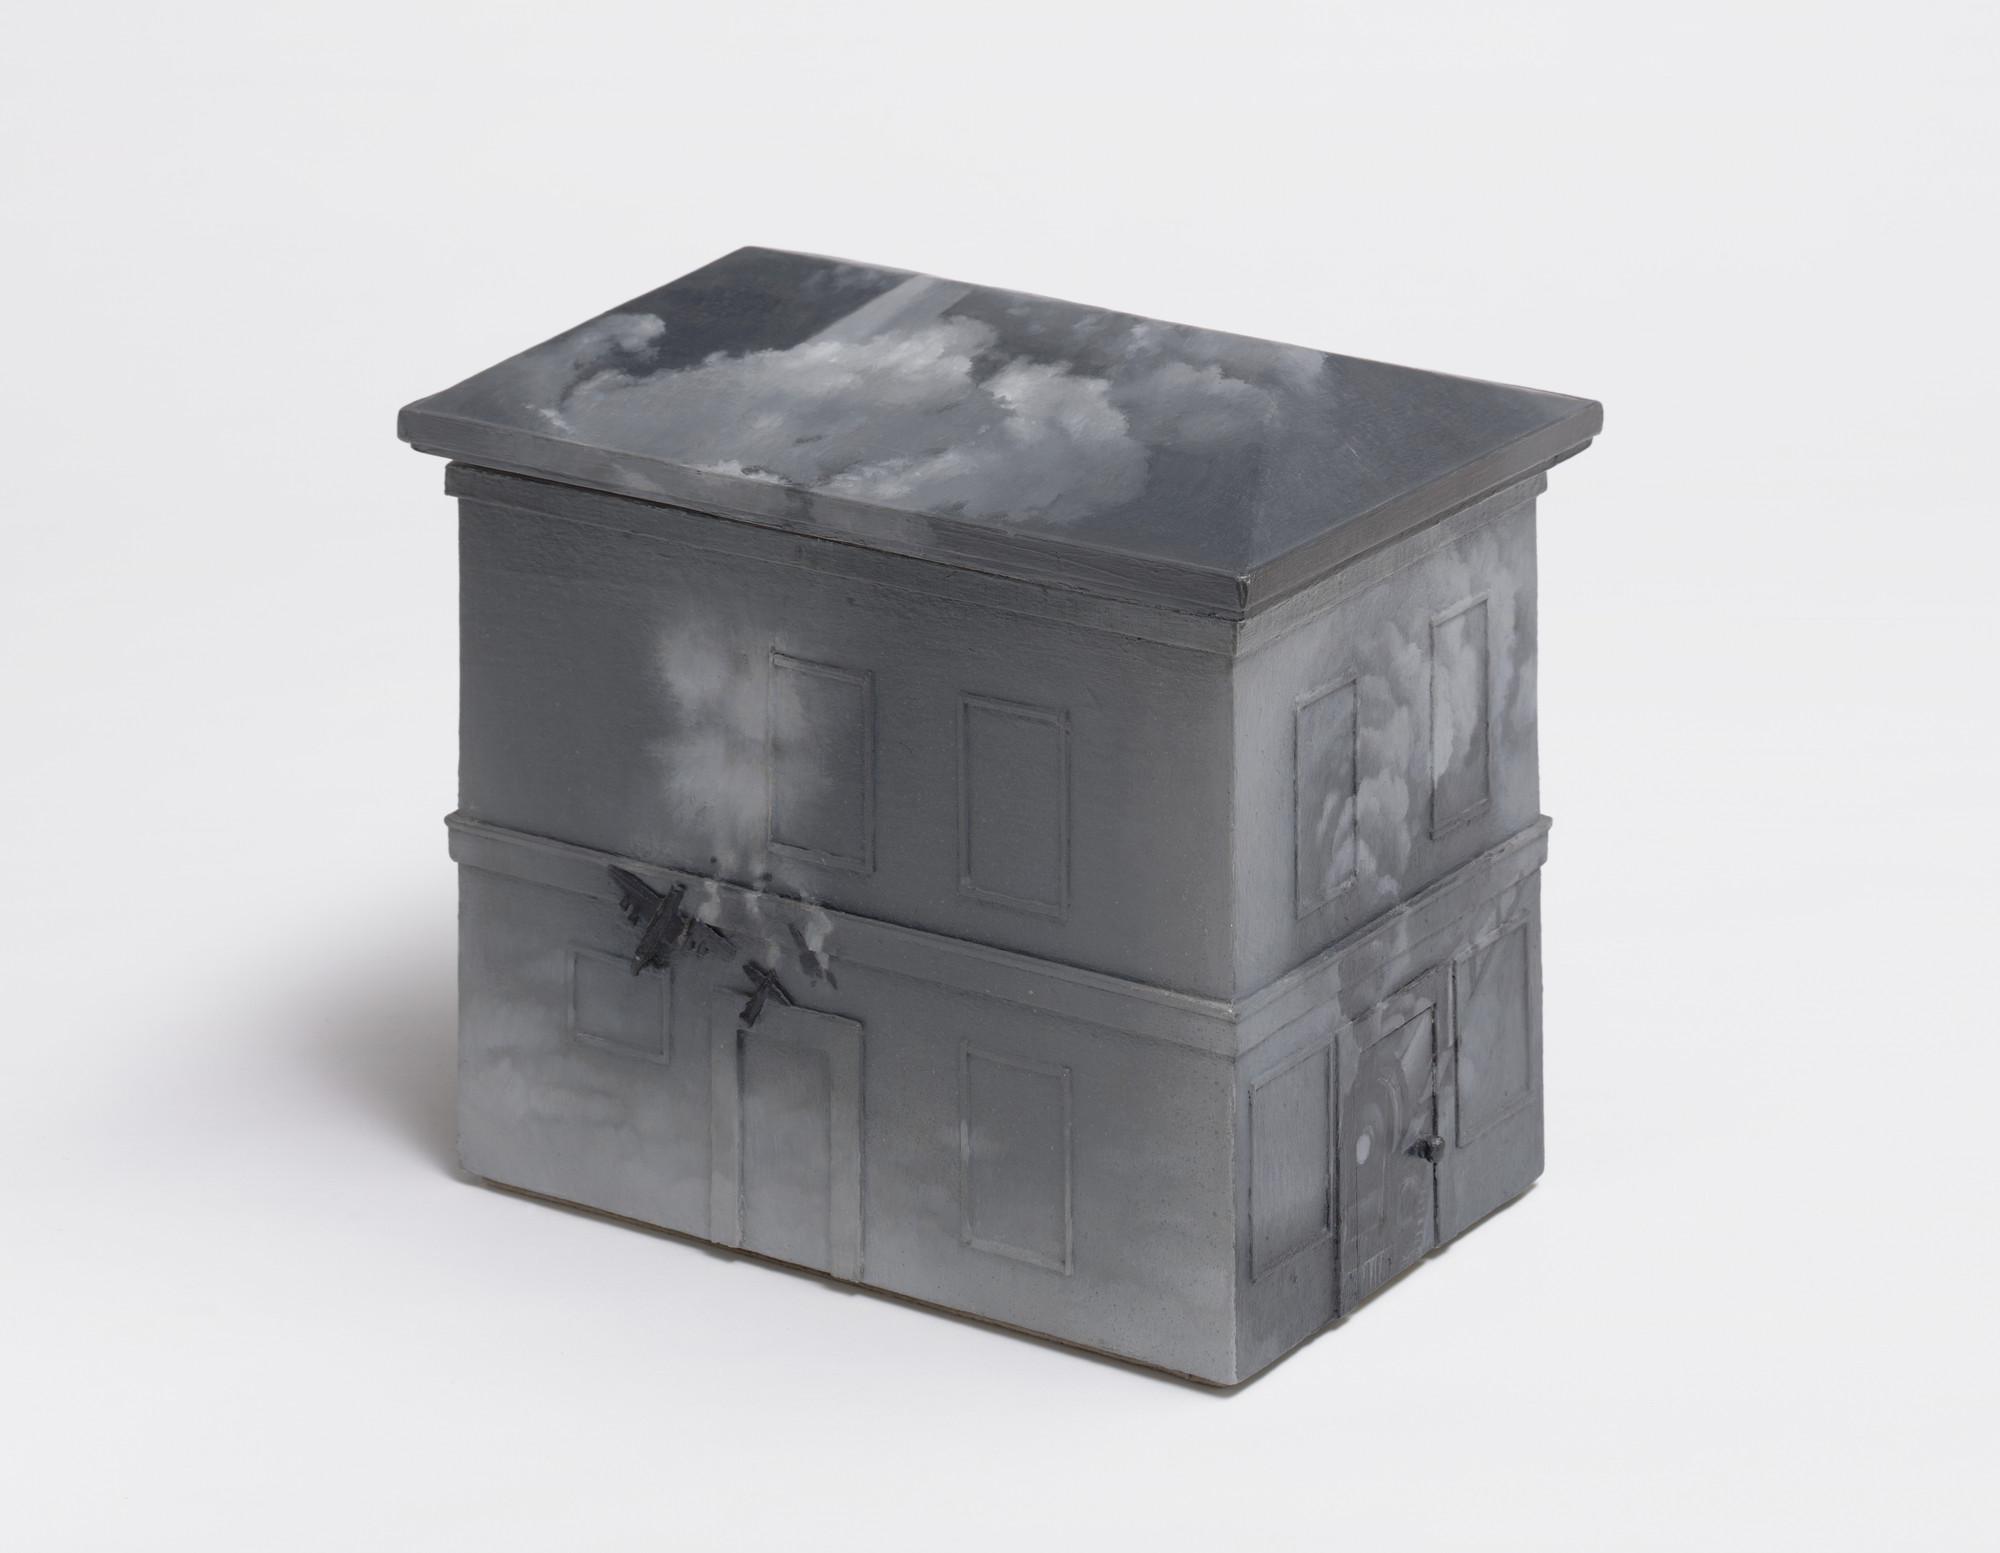 Vija Celmins. House #1. 1965